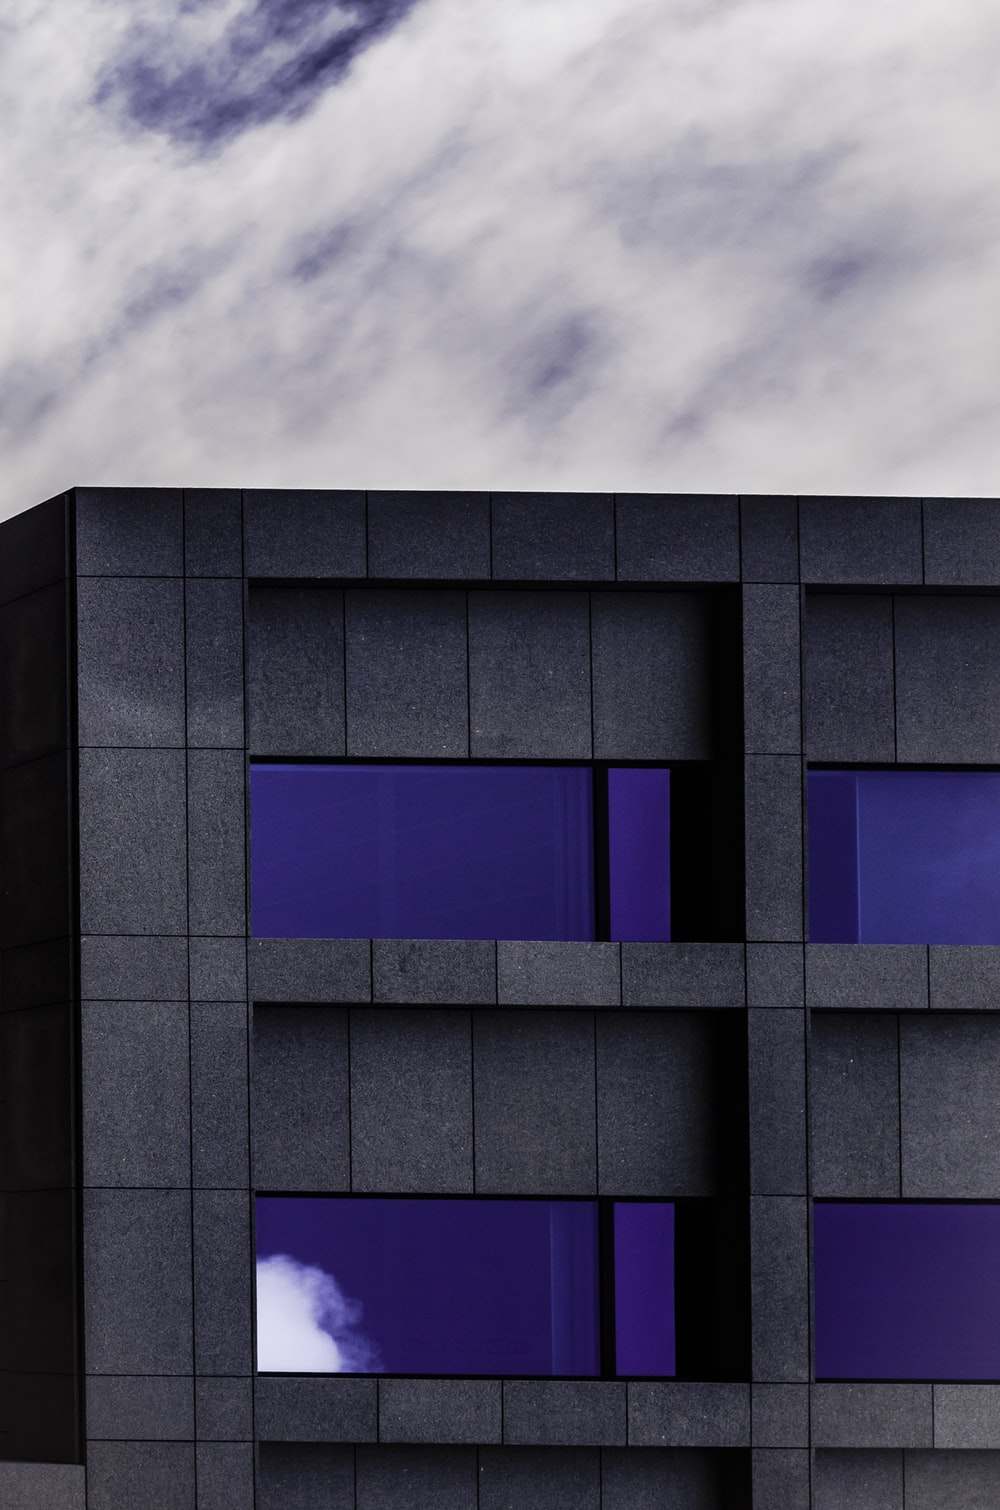 gray and purple concrete building under cloudy skyt